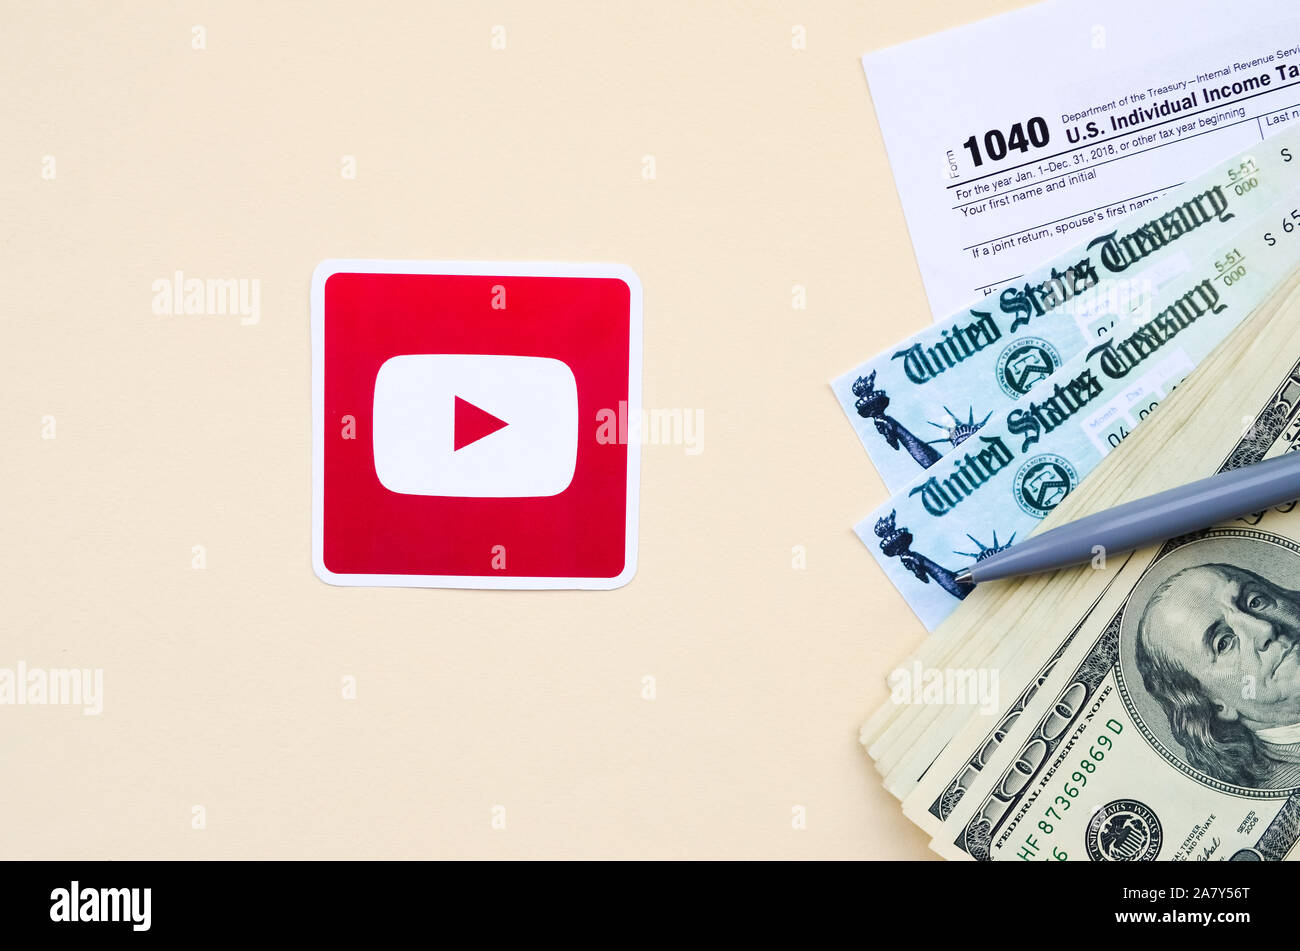 KHARKOV, UKRAINE - OCTOBER 3, 2019: Youtube printed logo lies with 1040 Individual Income tax return form with Refund Check and hundred dollar bills o Stock Photo